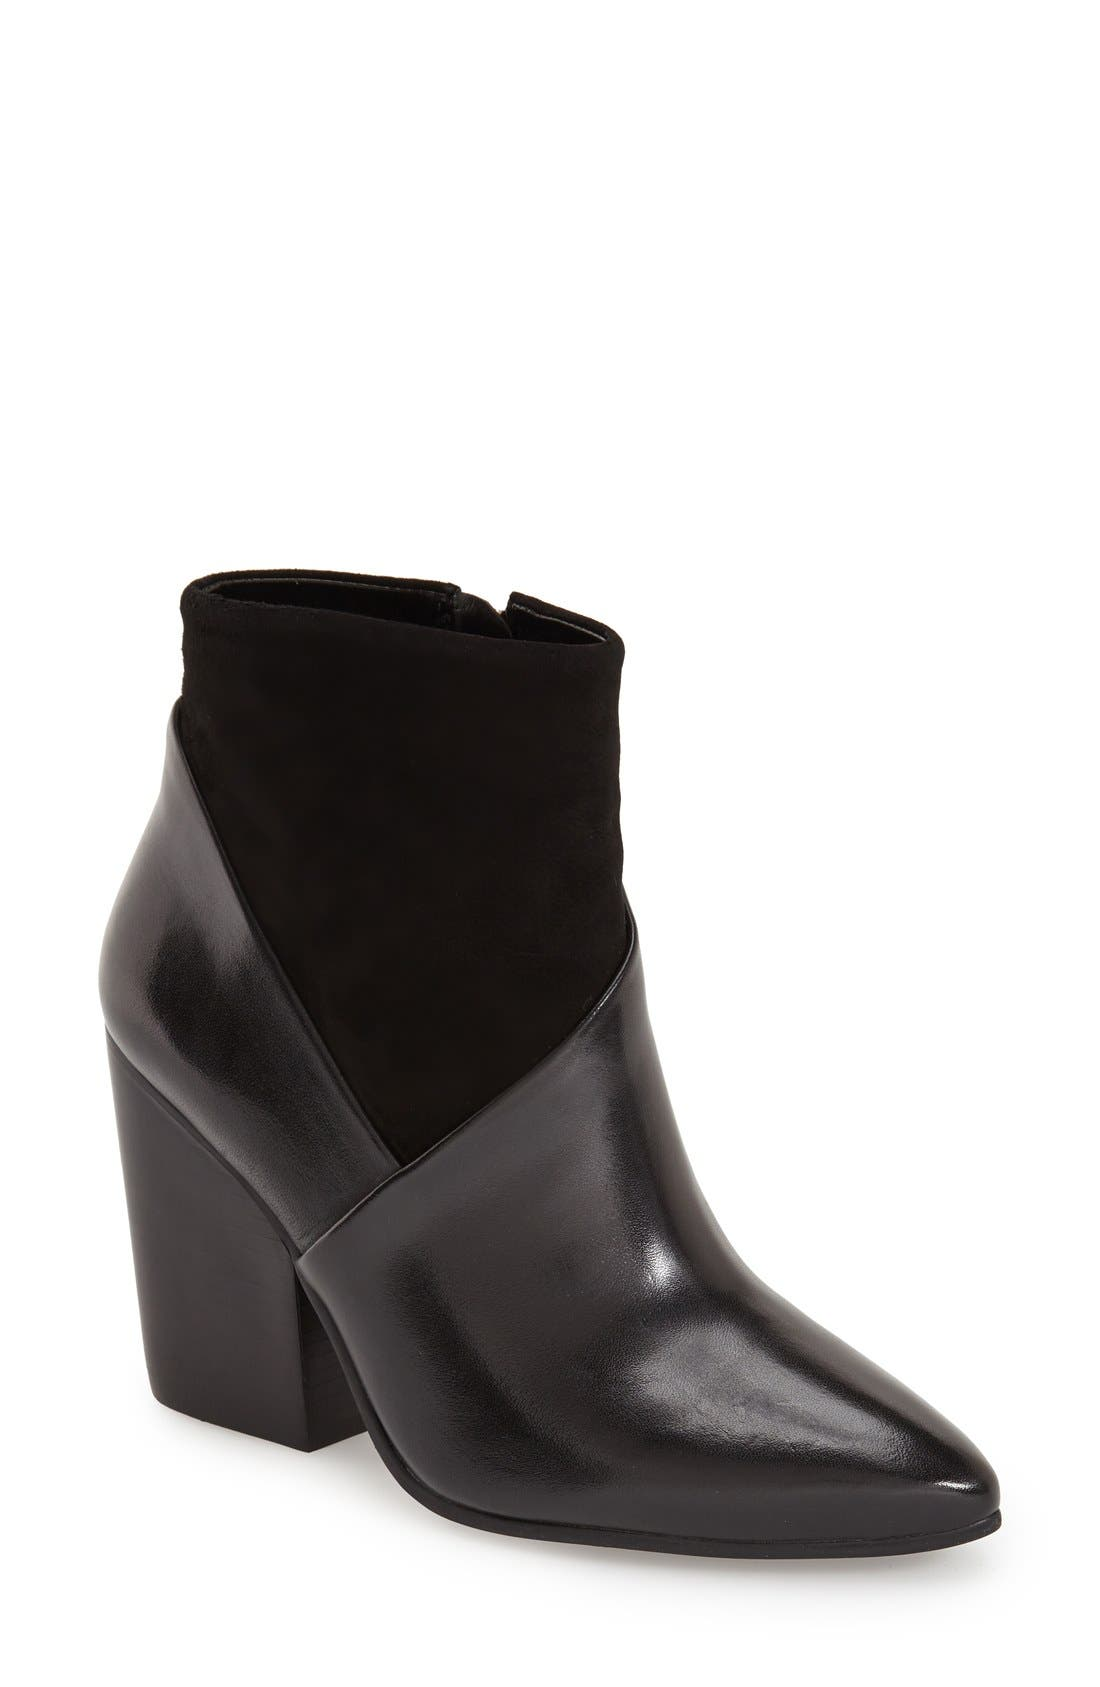 Alternate Image 1 Selected - Vince Camuto 'Raylan' Bootie (Women)